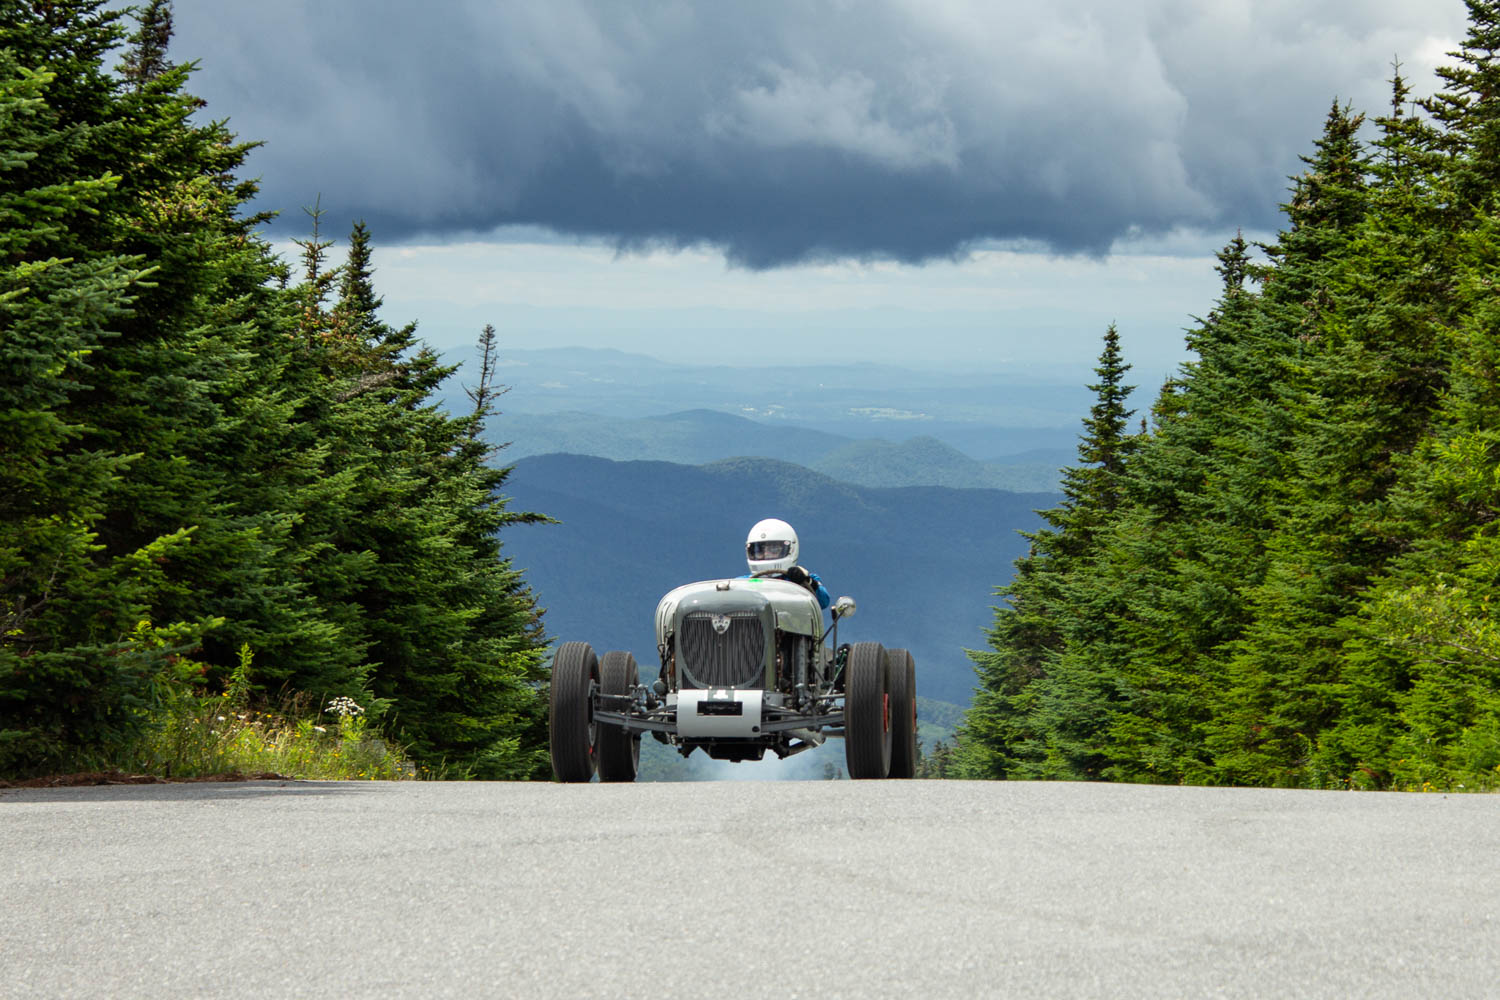 Ben Bragg and his Ford-powered 1935 Old Grey Mare Special. Bragg installed a leak-proof dipstick to keep oil in the flathead V-8 using race-proven wood and safety wire.